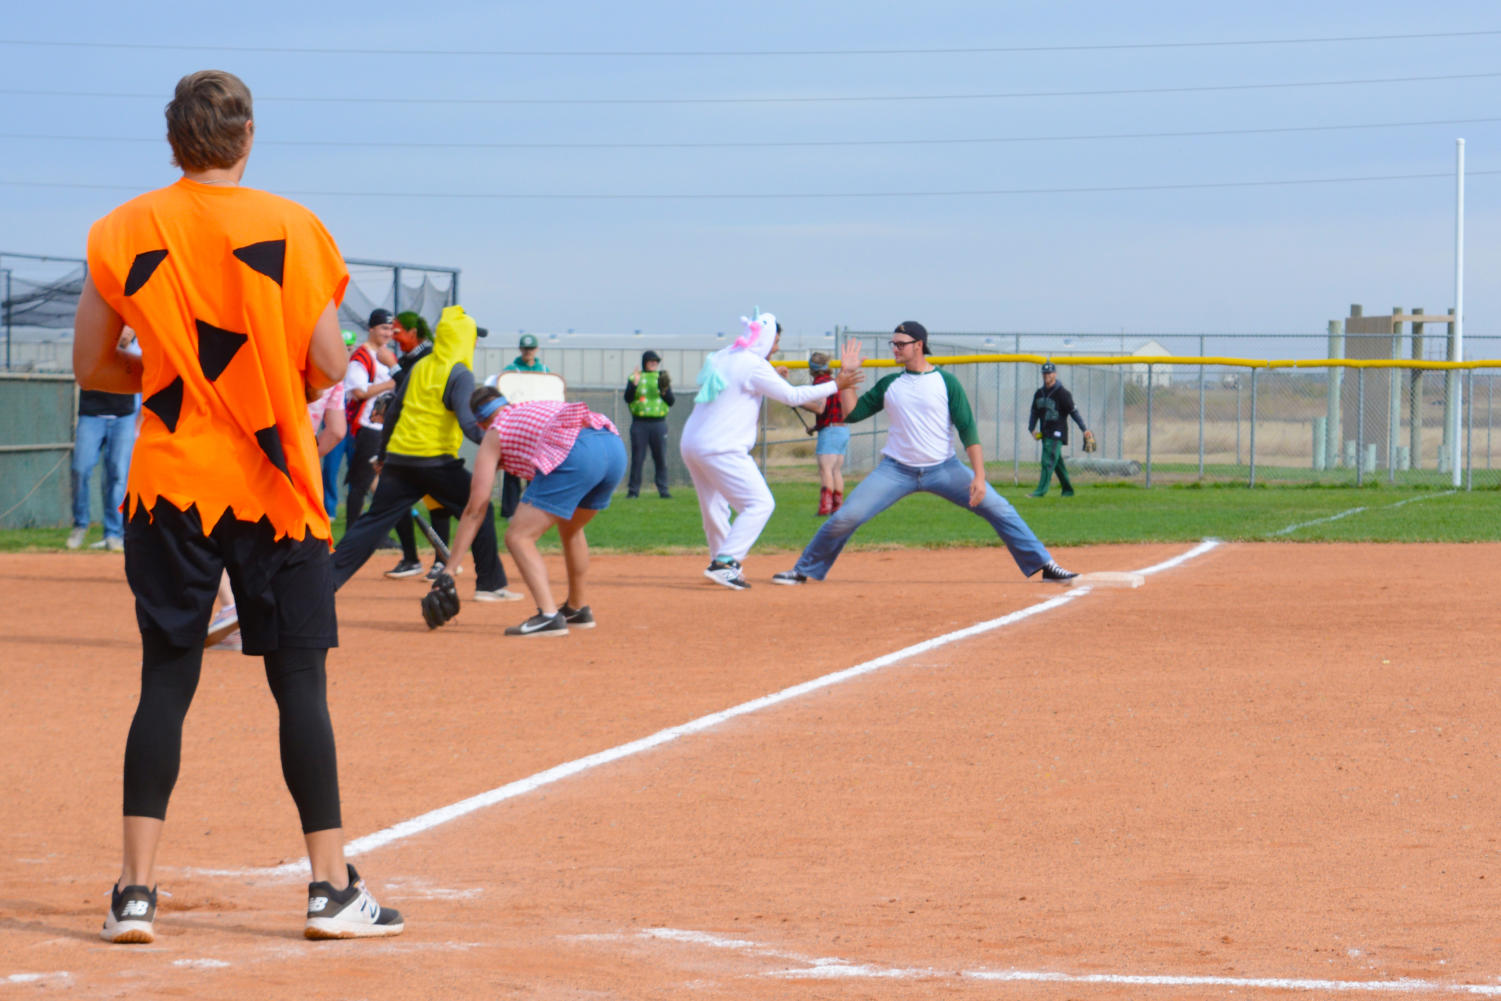 It was the very first slow pitch game for SCCC baseball and softball teams. both teams intermixed to create teams to play each other on the softball field for charity.